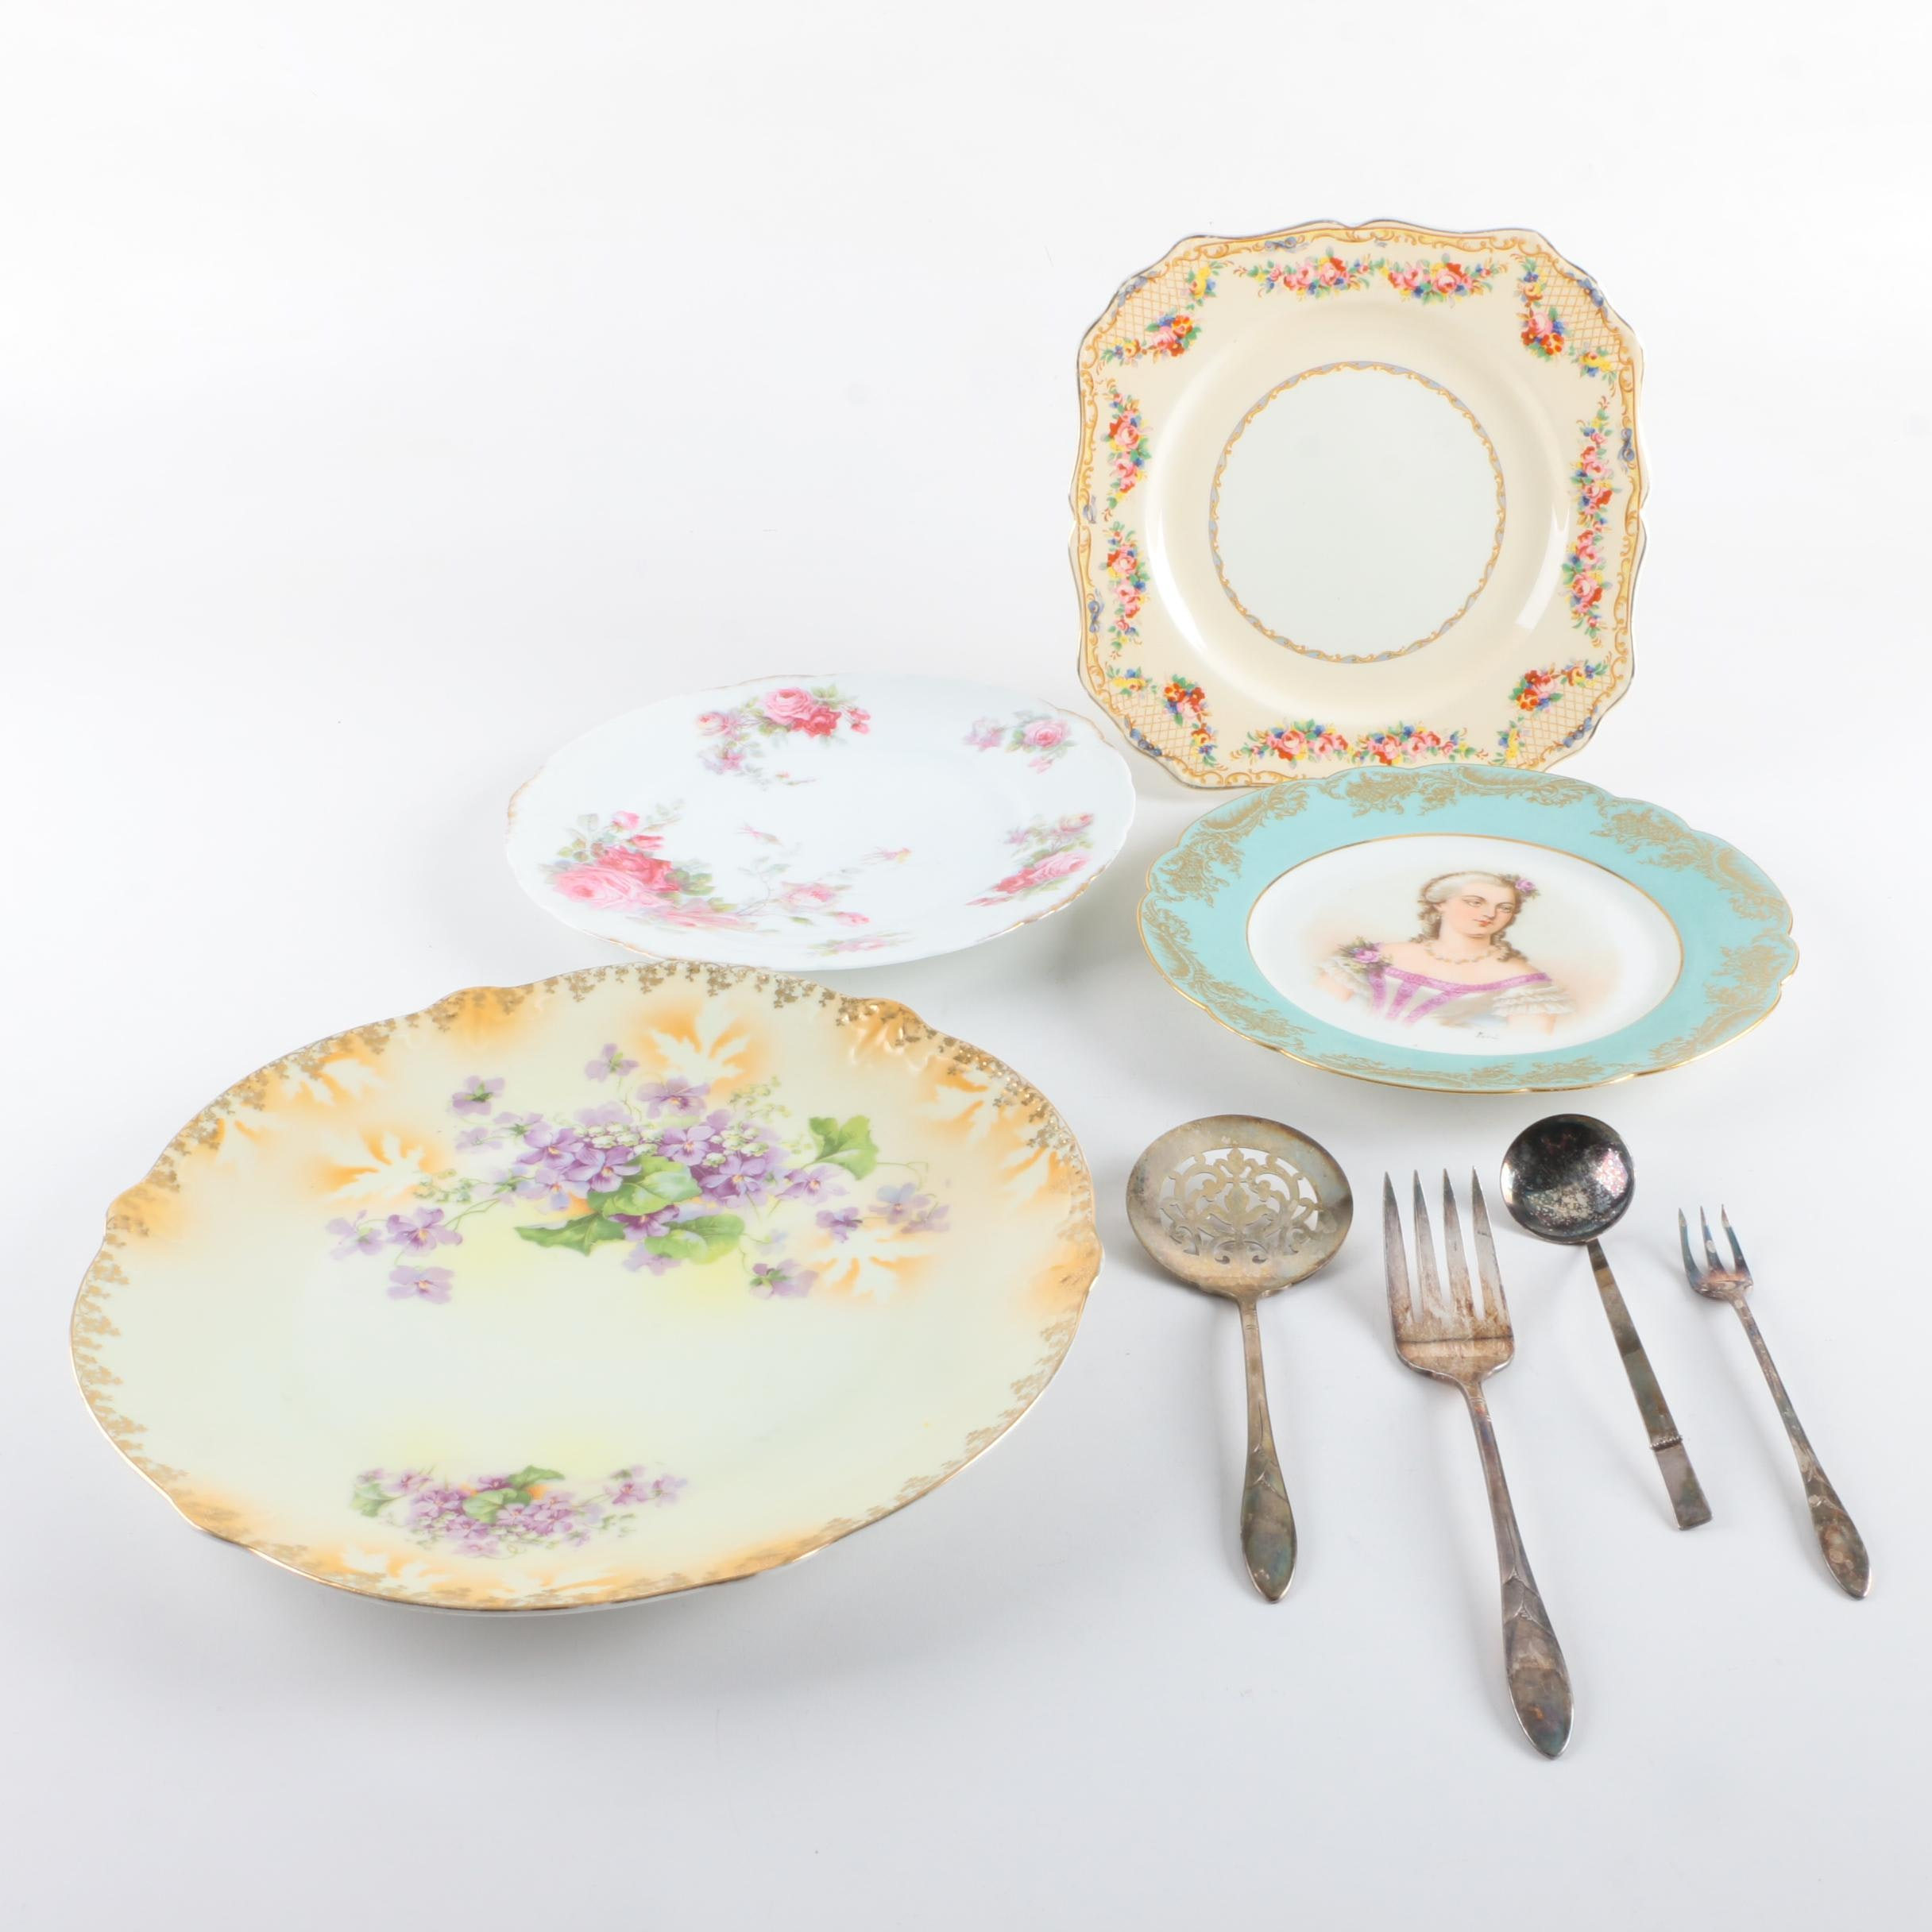 J & G Meakin, Sevres and Bavarian Porcelain Plates with Silver Plate Flatware